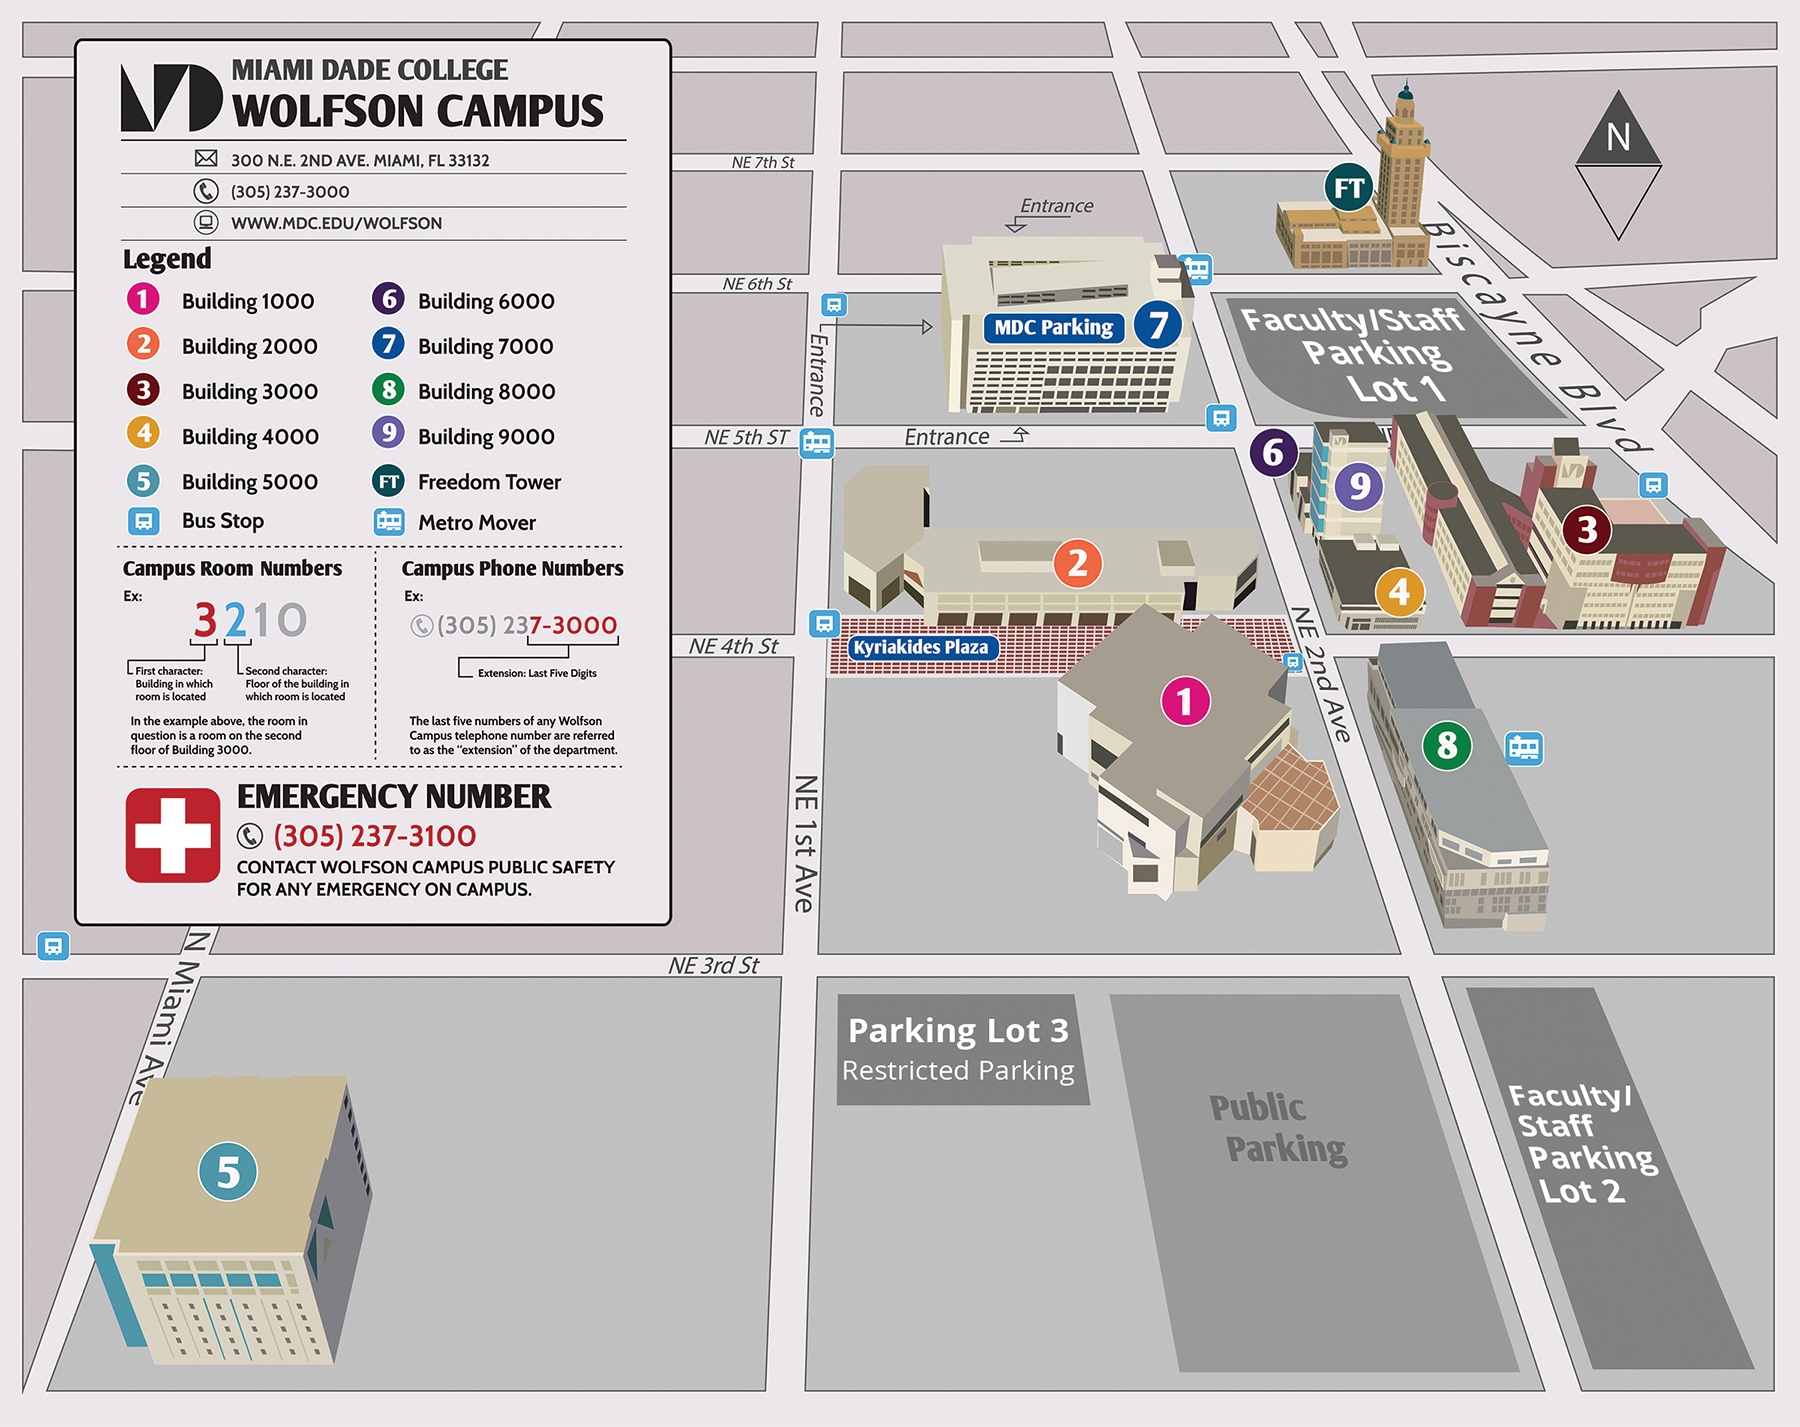 Miami Dade North Campus Map Wolfson Campus Map & Directions Miami Dade North Campus Map